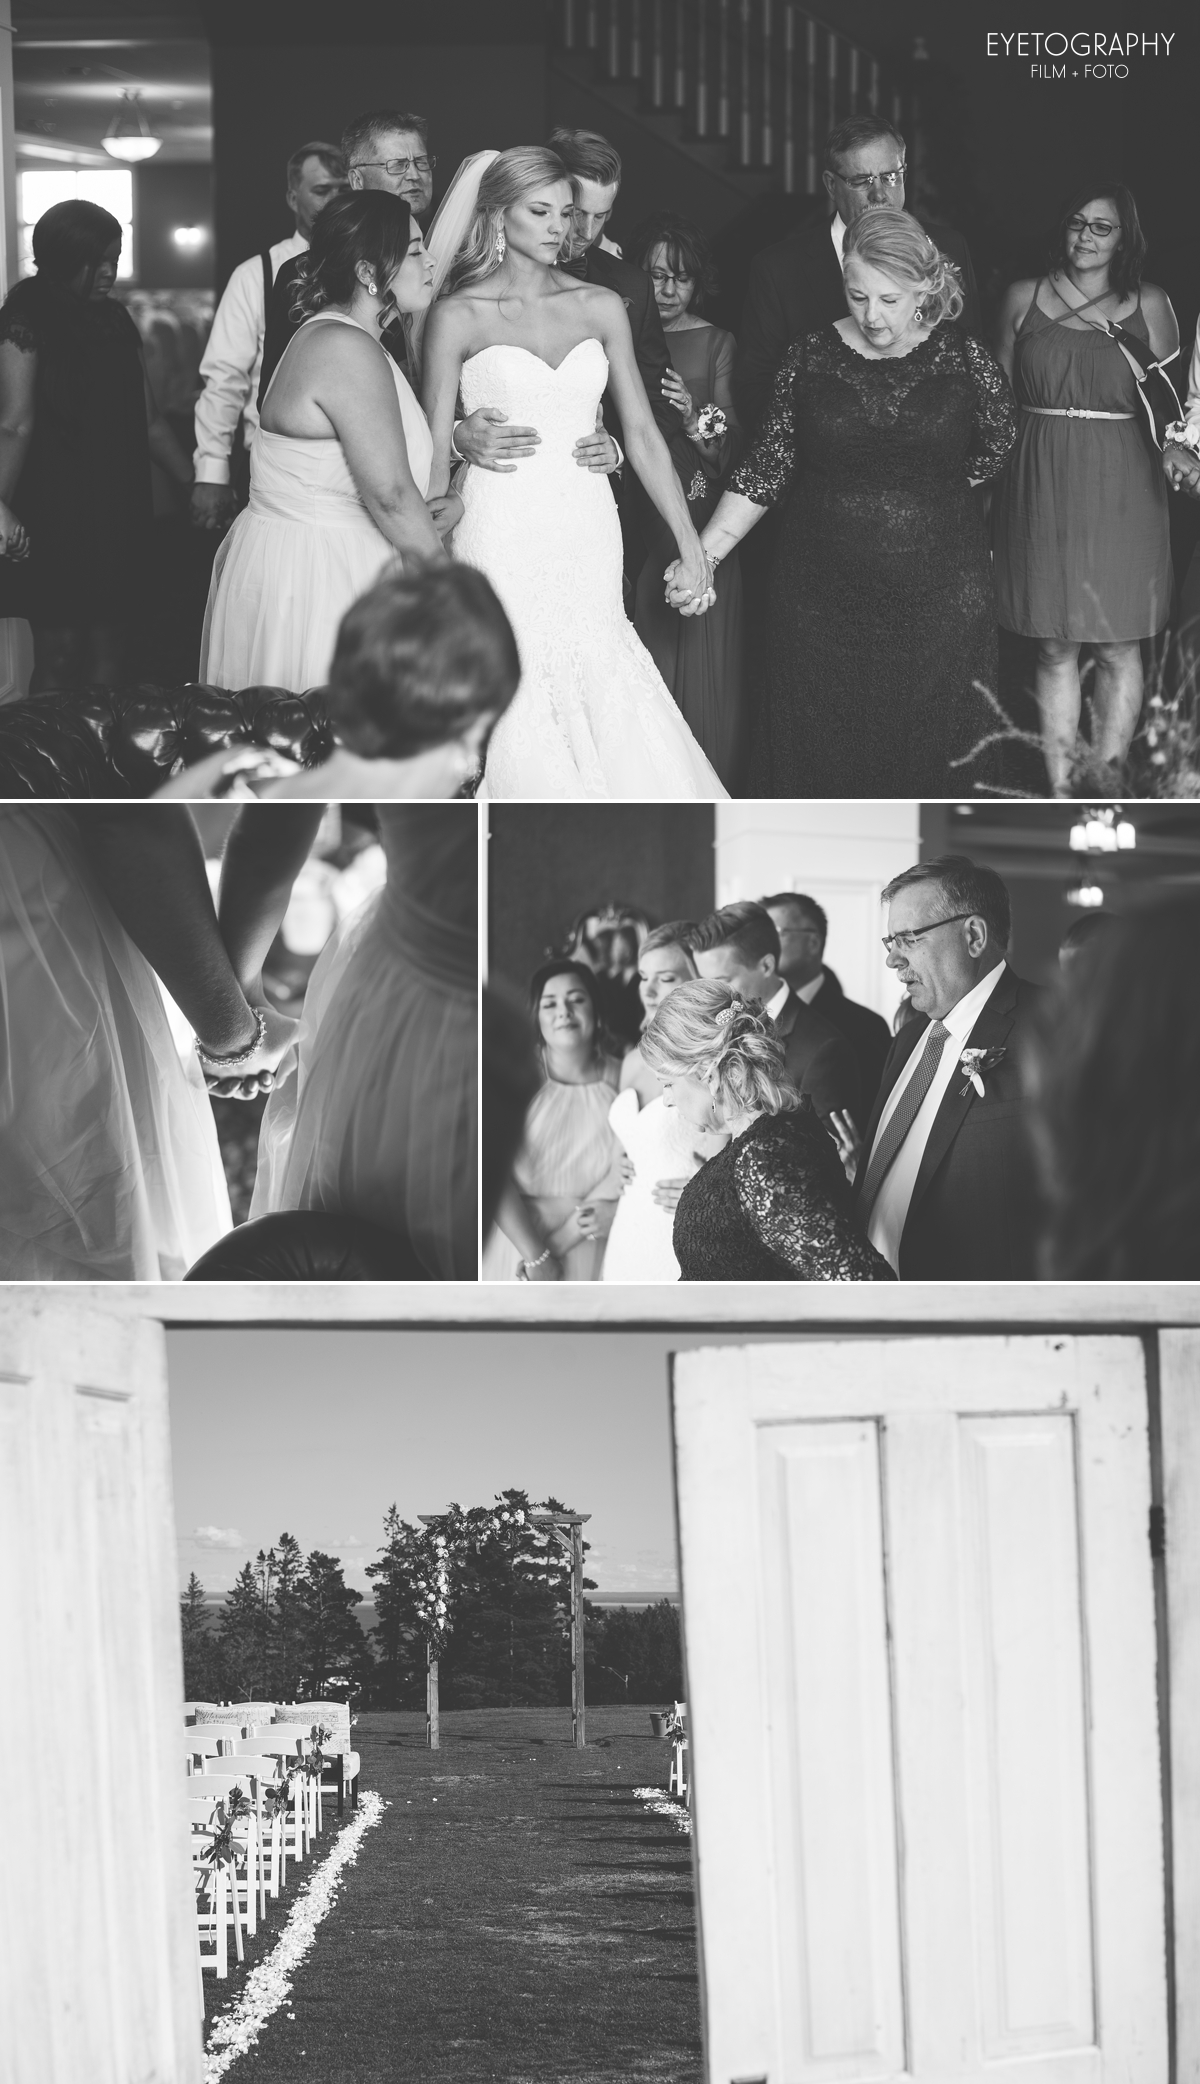 Duluth Minnesota Wedding Photography | Northland Country Club | Eyetography Film + Foto | Kendra + Mike 8